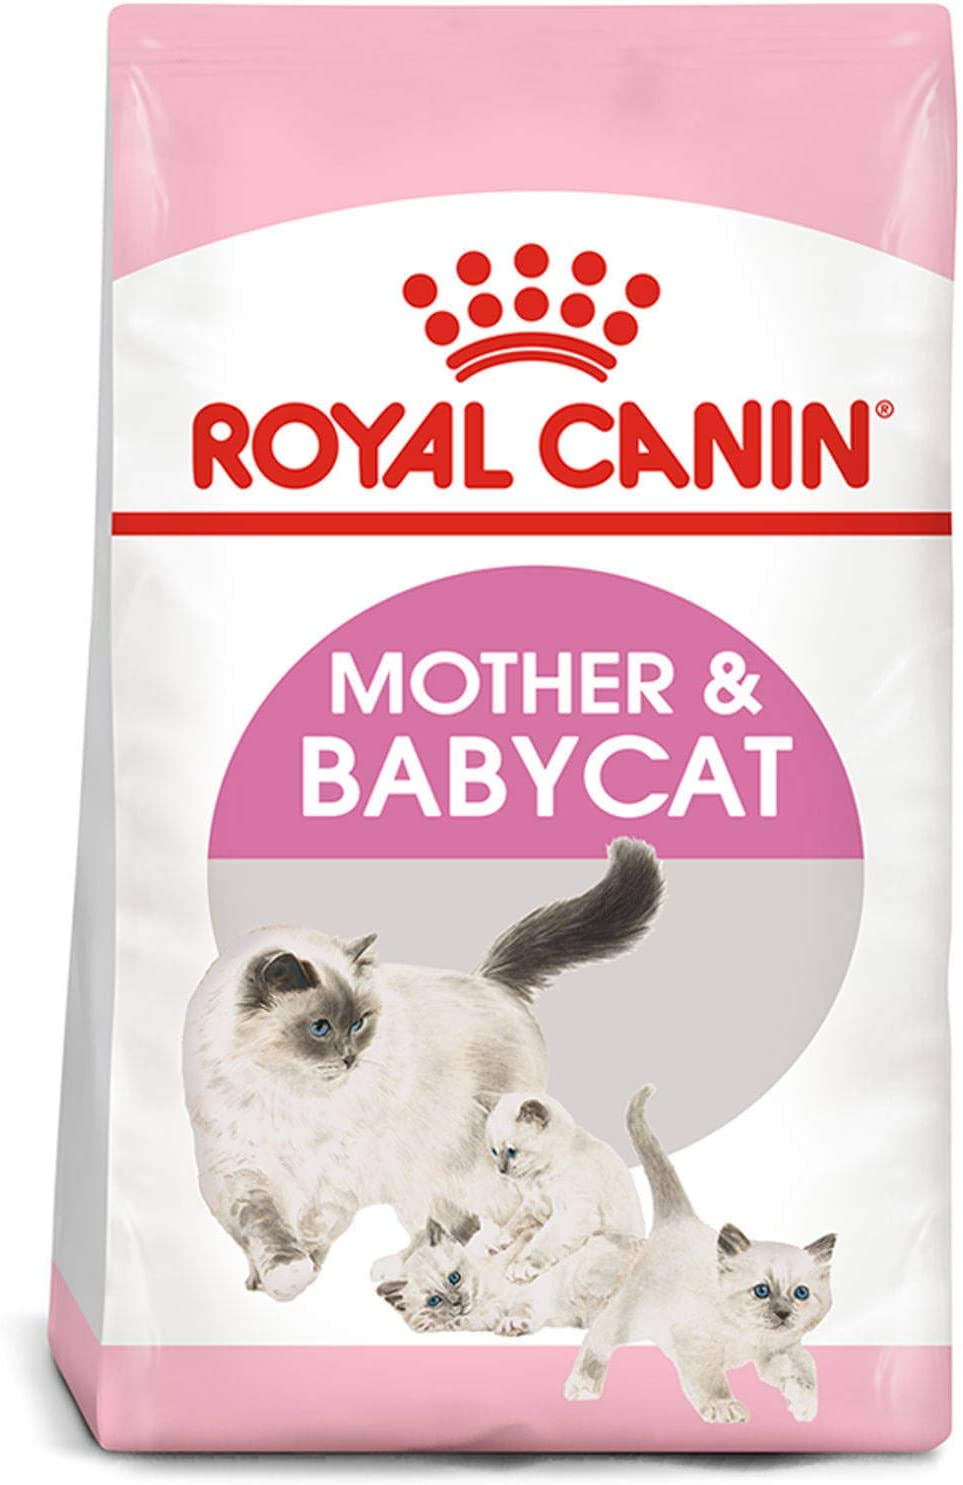 Royal Canin - Mother Babycat, 10KG